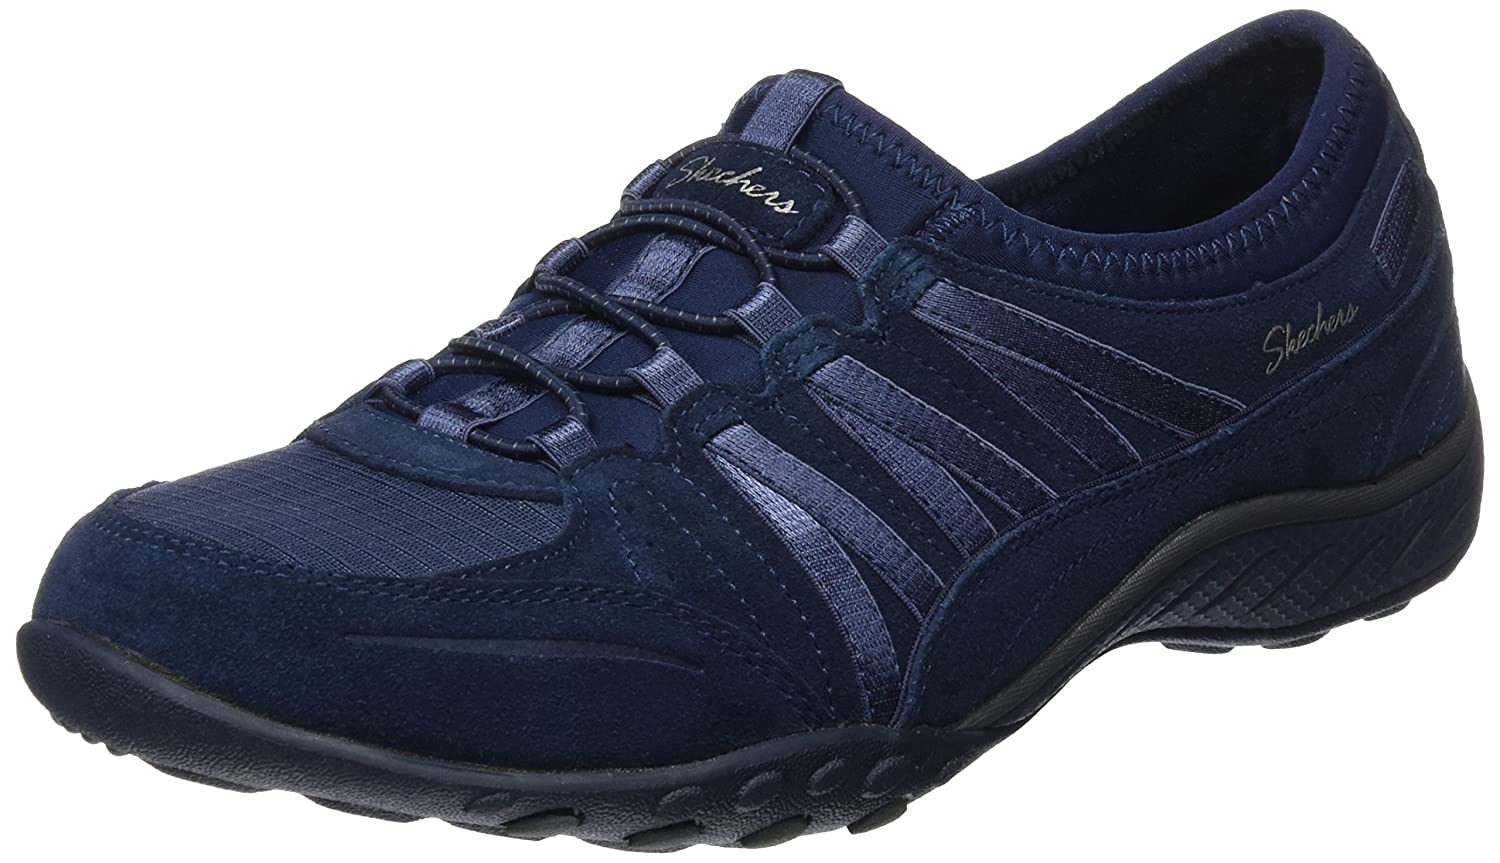 Skechers Sport Women's Relaxation Breathe Easy Moneybags Sneaker B01EGON71E 8 B(M) US|Navy